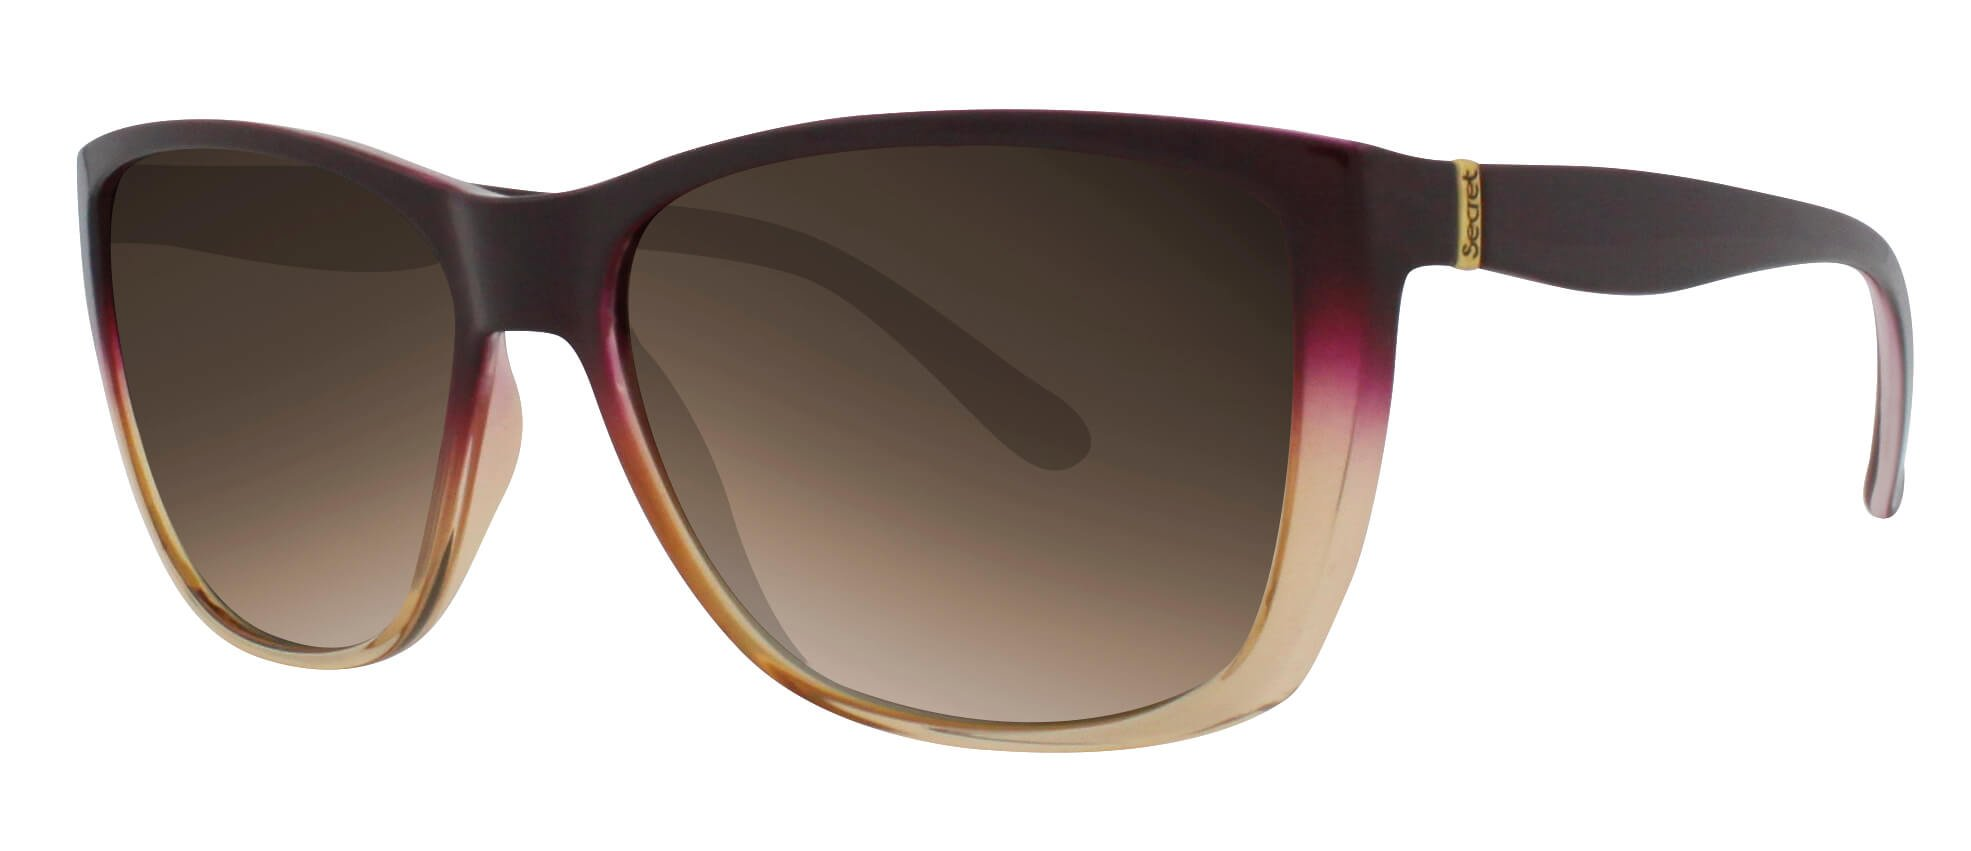 ÓC SECRET IRIS FADE PASSIONATE/YELLOW / POLARIZED GRADIENT BROWN